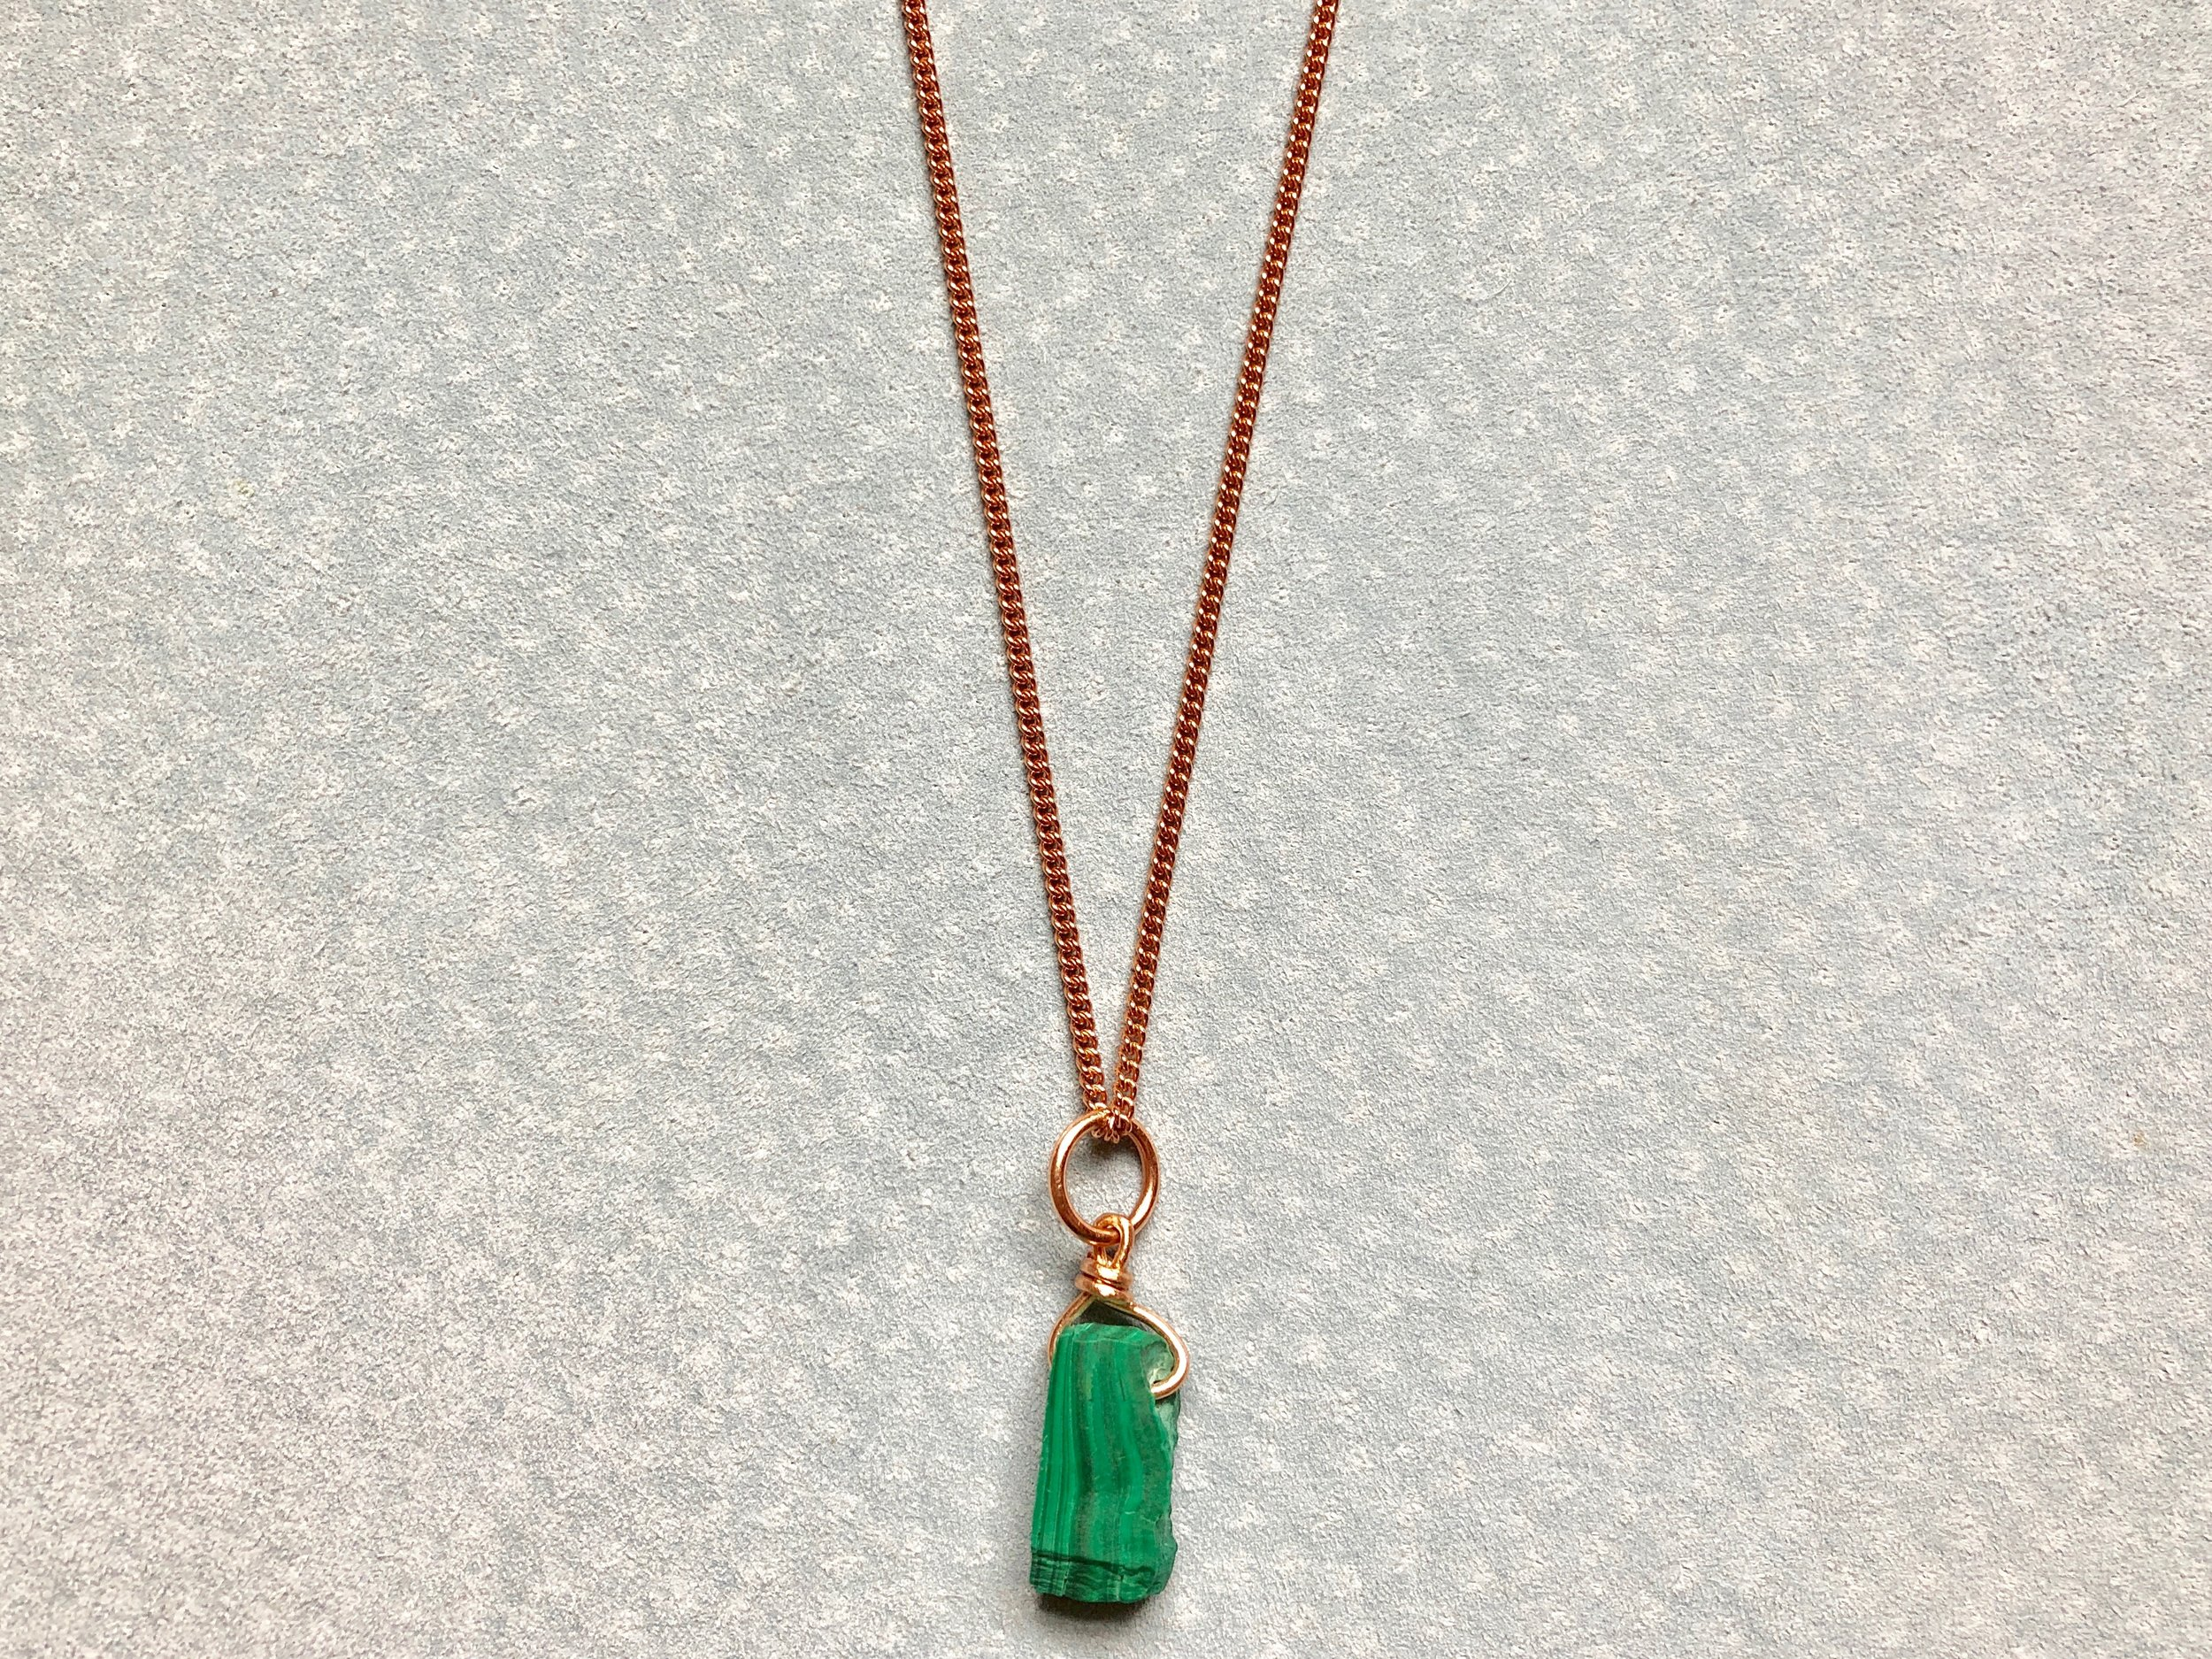 MALACHITE PENDANT ON ROSE GOLD CURB CHAIN